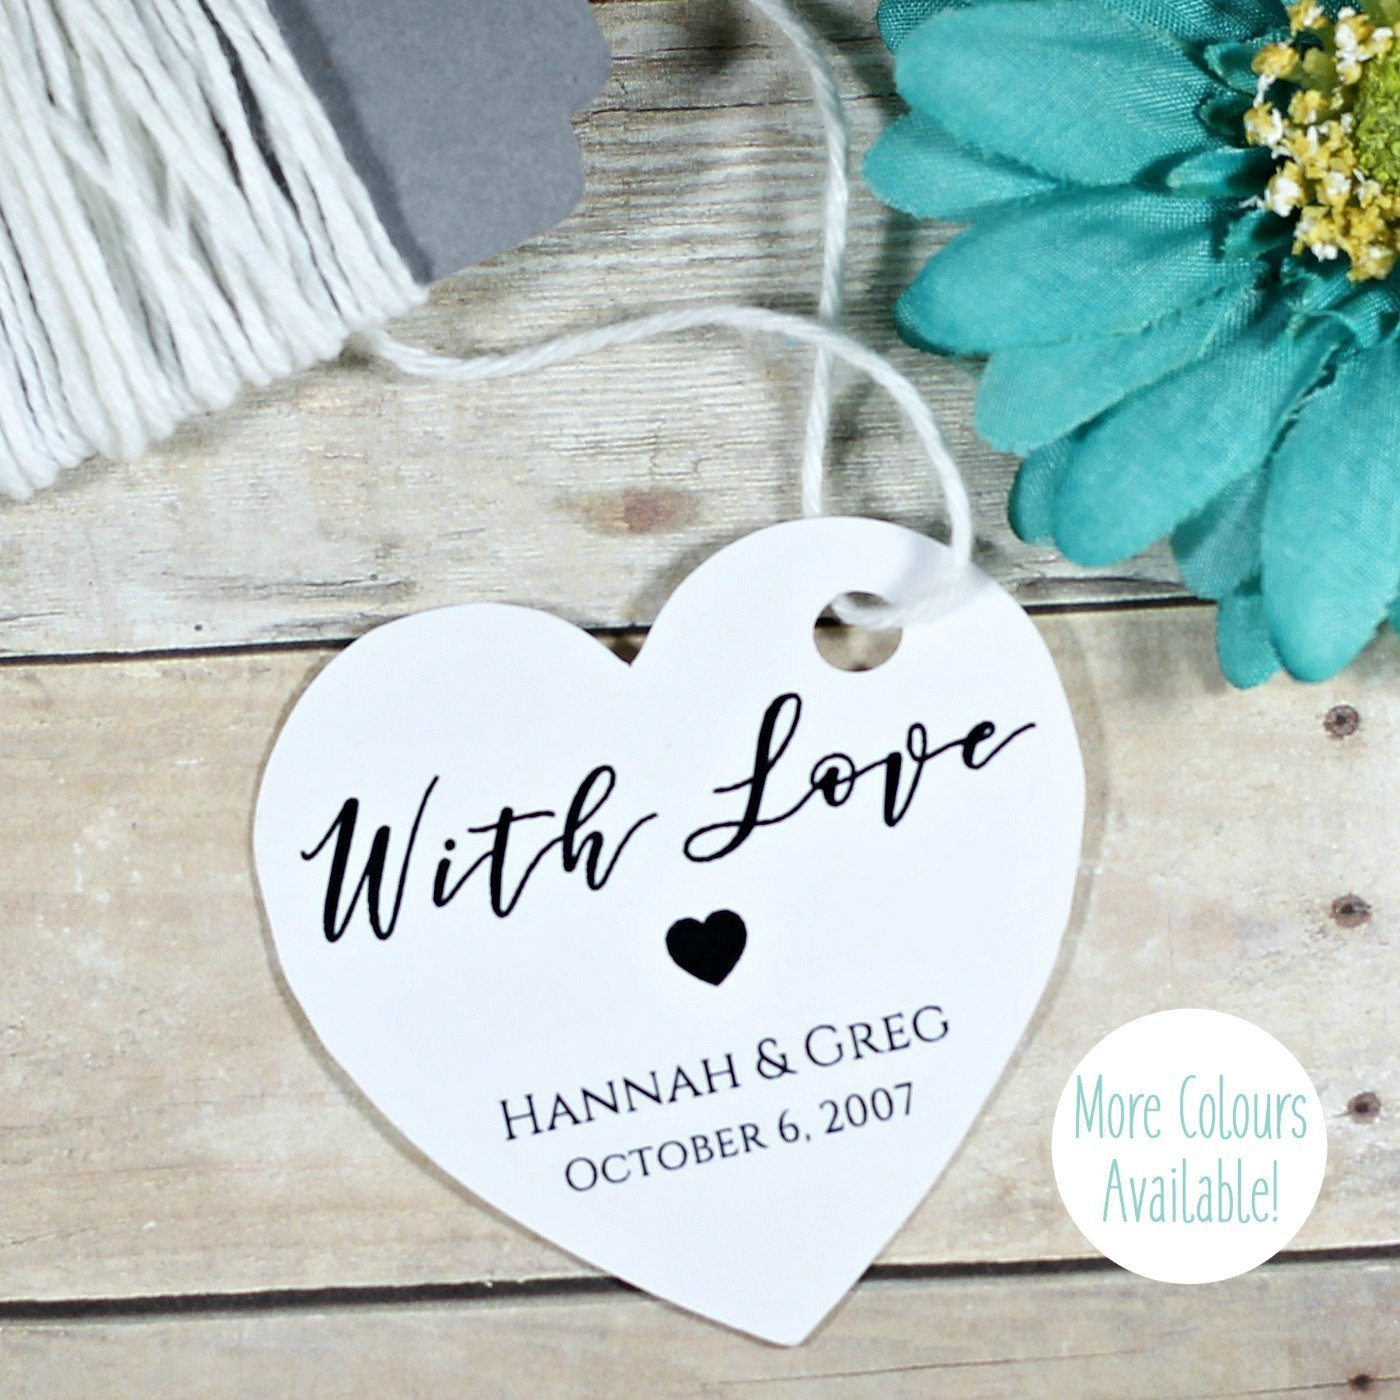 Personalized White Wedding Favor Tags - Custom Heart Shaped Tags With Love (Set of 20)